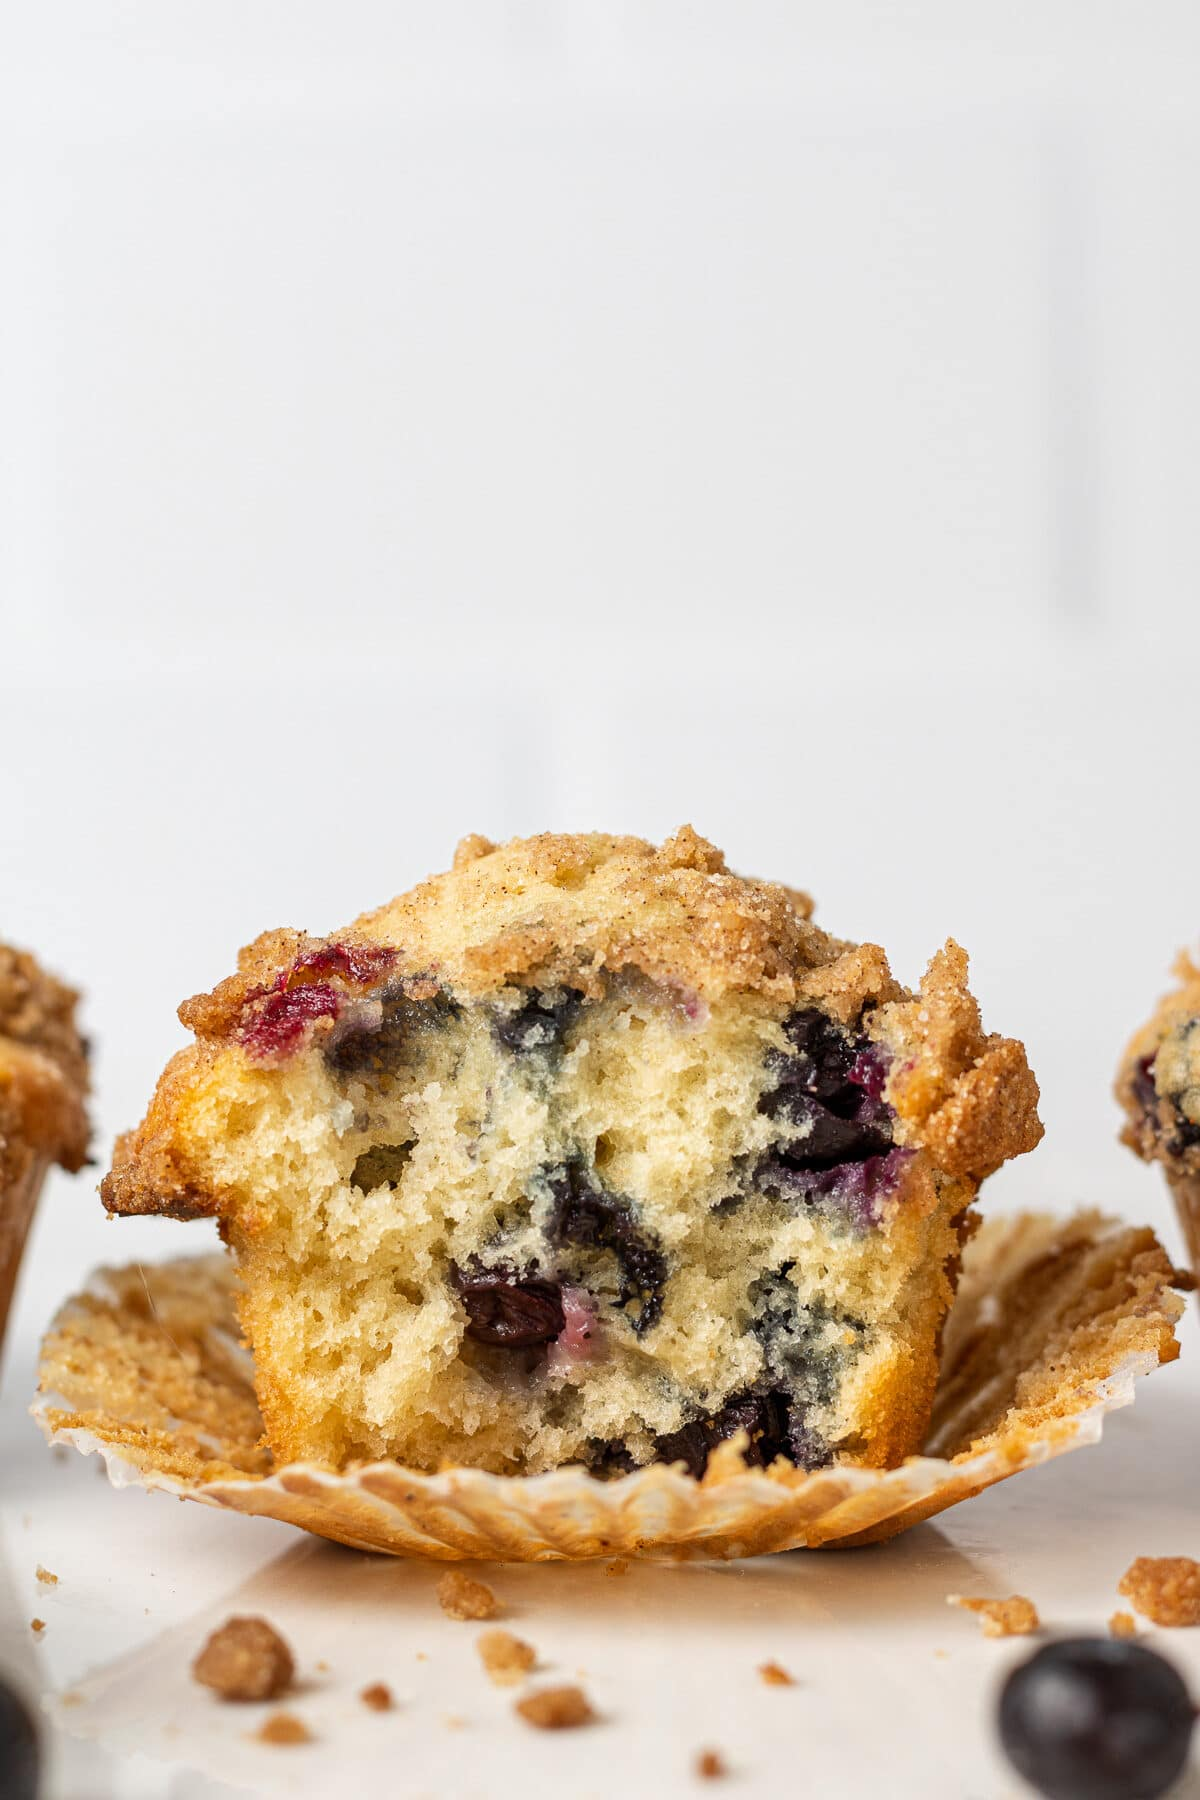 dairy free blueberry muffin with a bite out of it and crumbs around it